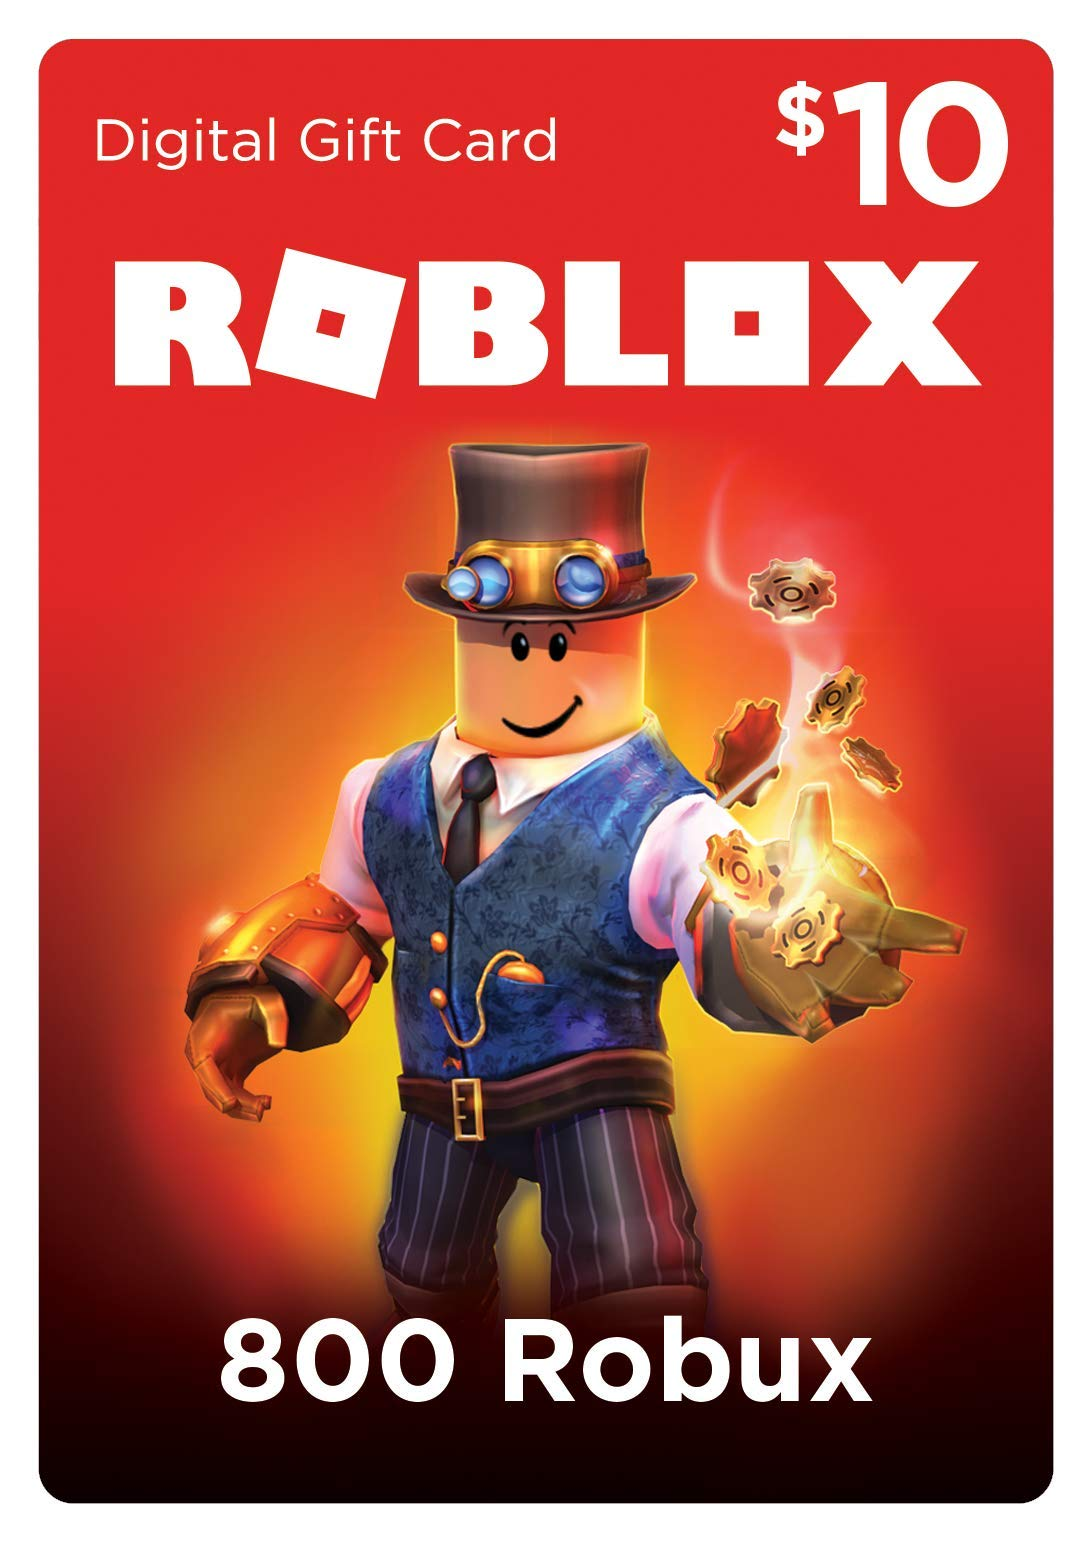 800 Robux for Roblox [Online Game Code] by Roblox